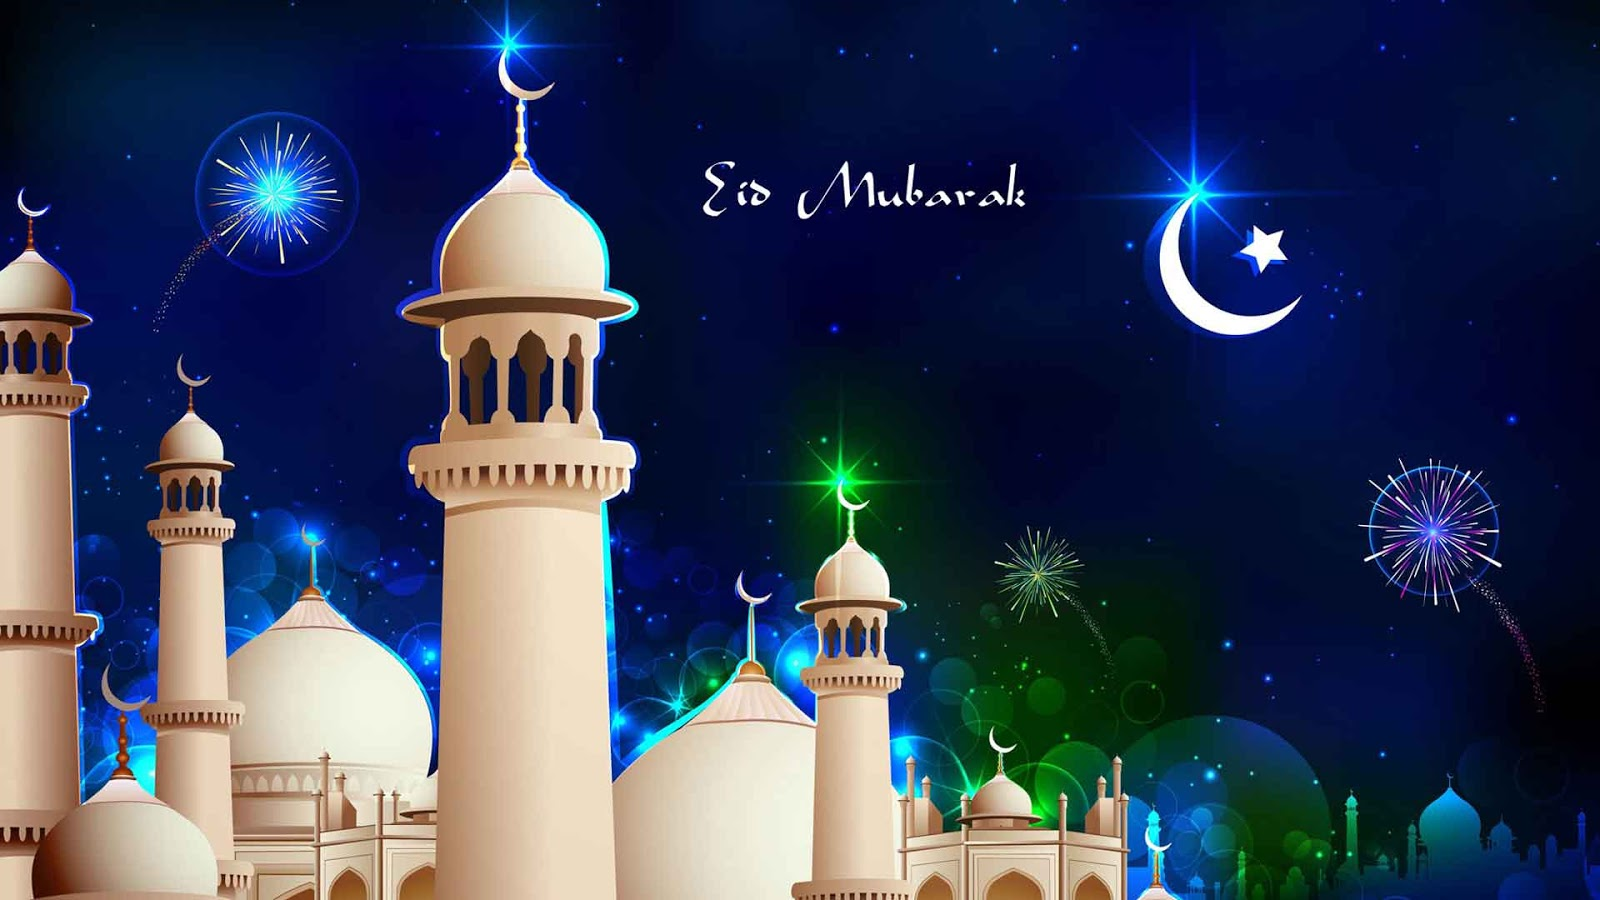 Eid Mubarak  Hd Images We Are Collected For Ramzan Mubarak Hd Images Eid Ul Fitr  Eid Is One Of The Major Celebrations Of Muslim Celebrated By